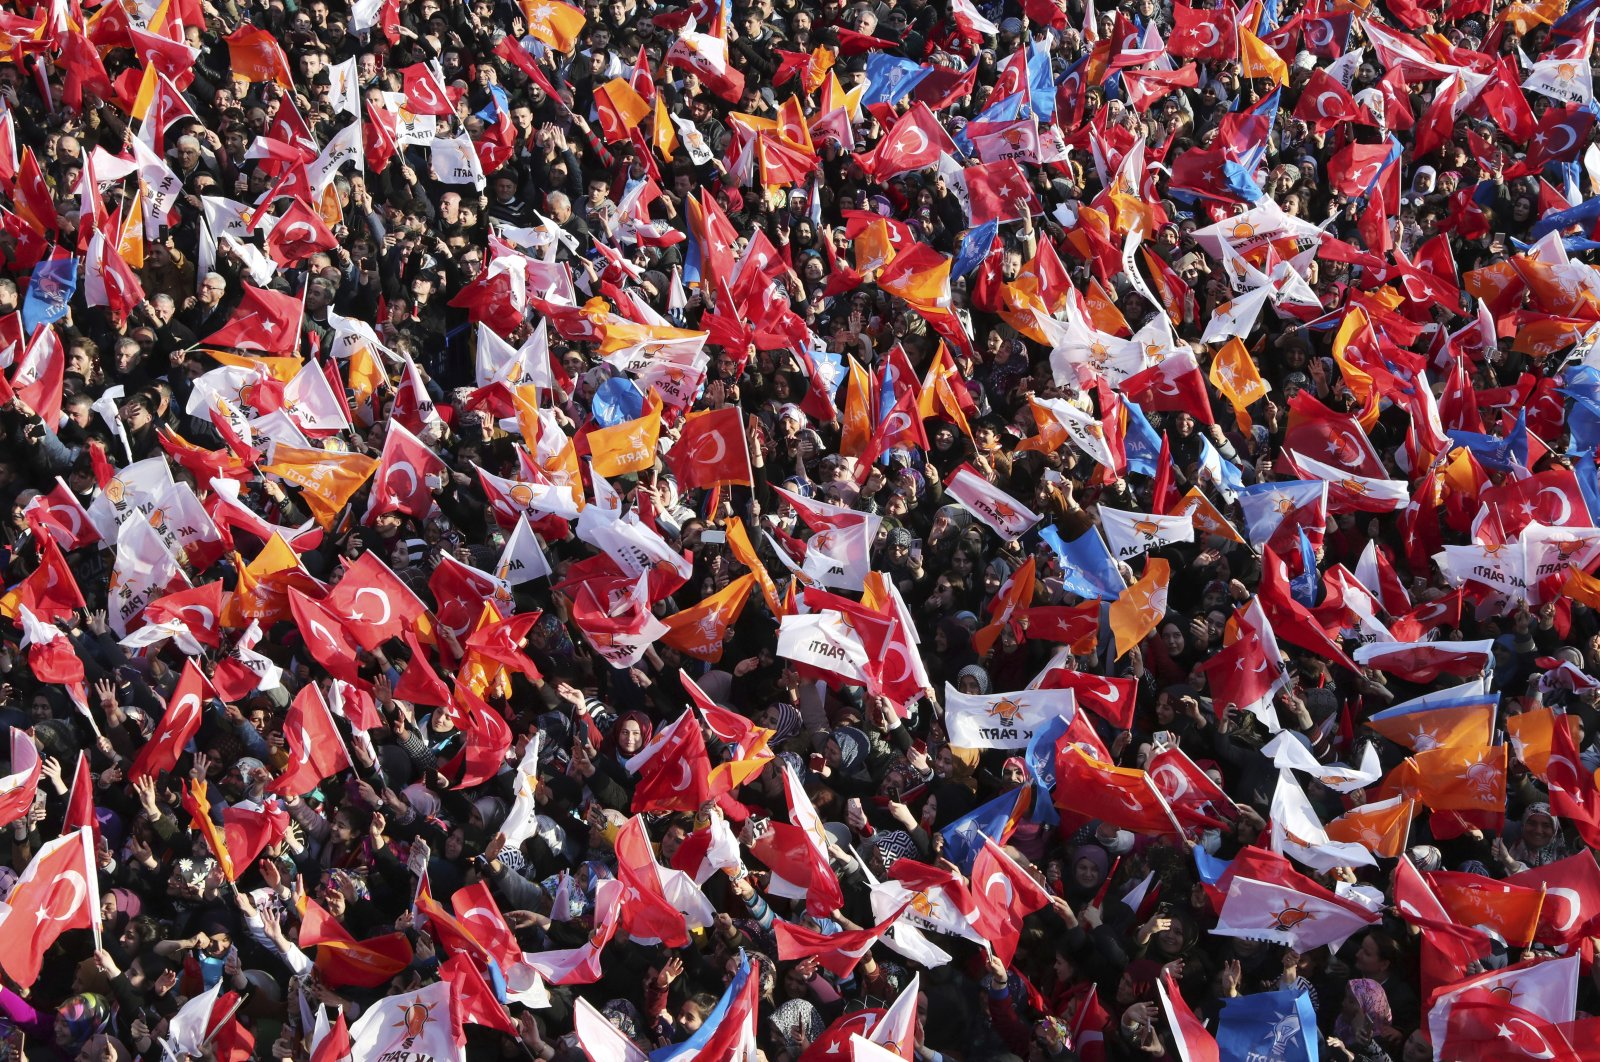 Supporters of Turkey's President Recep Tayyip Erdoğan's ruling Justice and Development Party (AK Party) wave Turkish and party flags during his speech at a rally in Bartın, Turkey, March 4, 2019. (Presidential Press Service via AP, Pool)